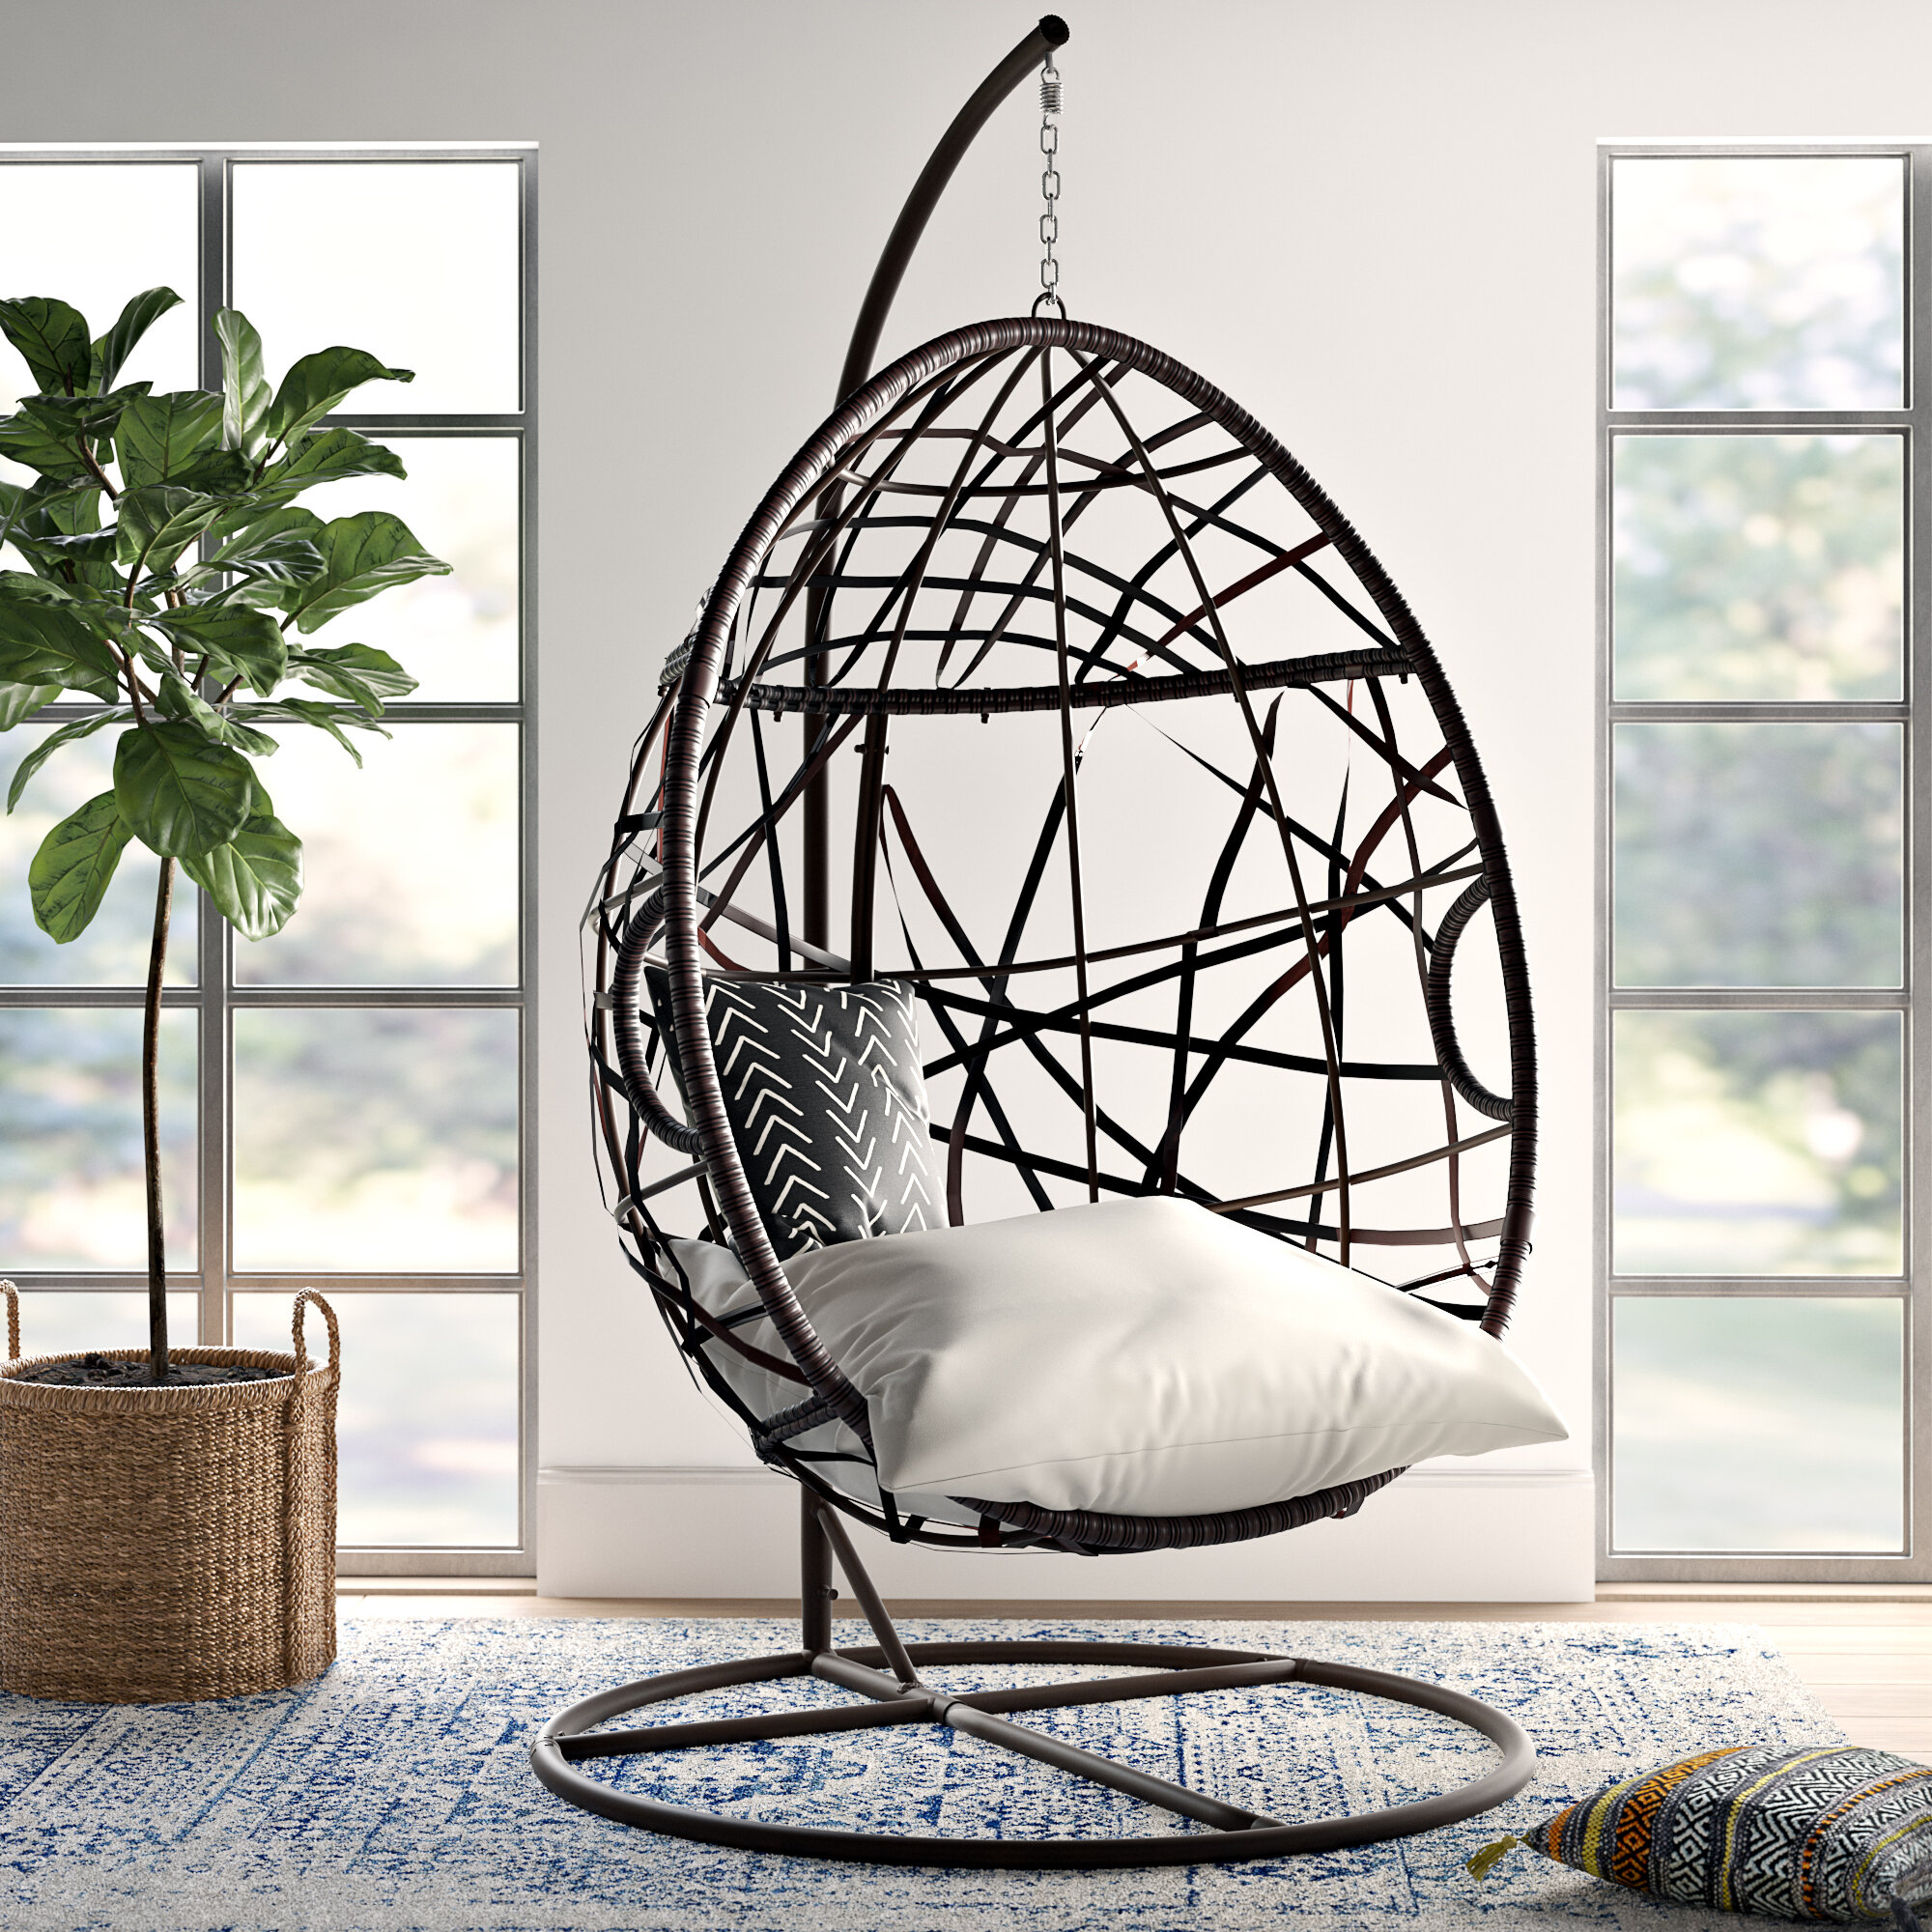 Mistana Anner Tear Drop Swing Chair With Stand & Reviews Pertaining To Outdoor Wicker Plastic Tear Porch Swings With Stand (View 6 of 25)